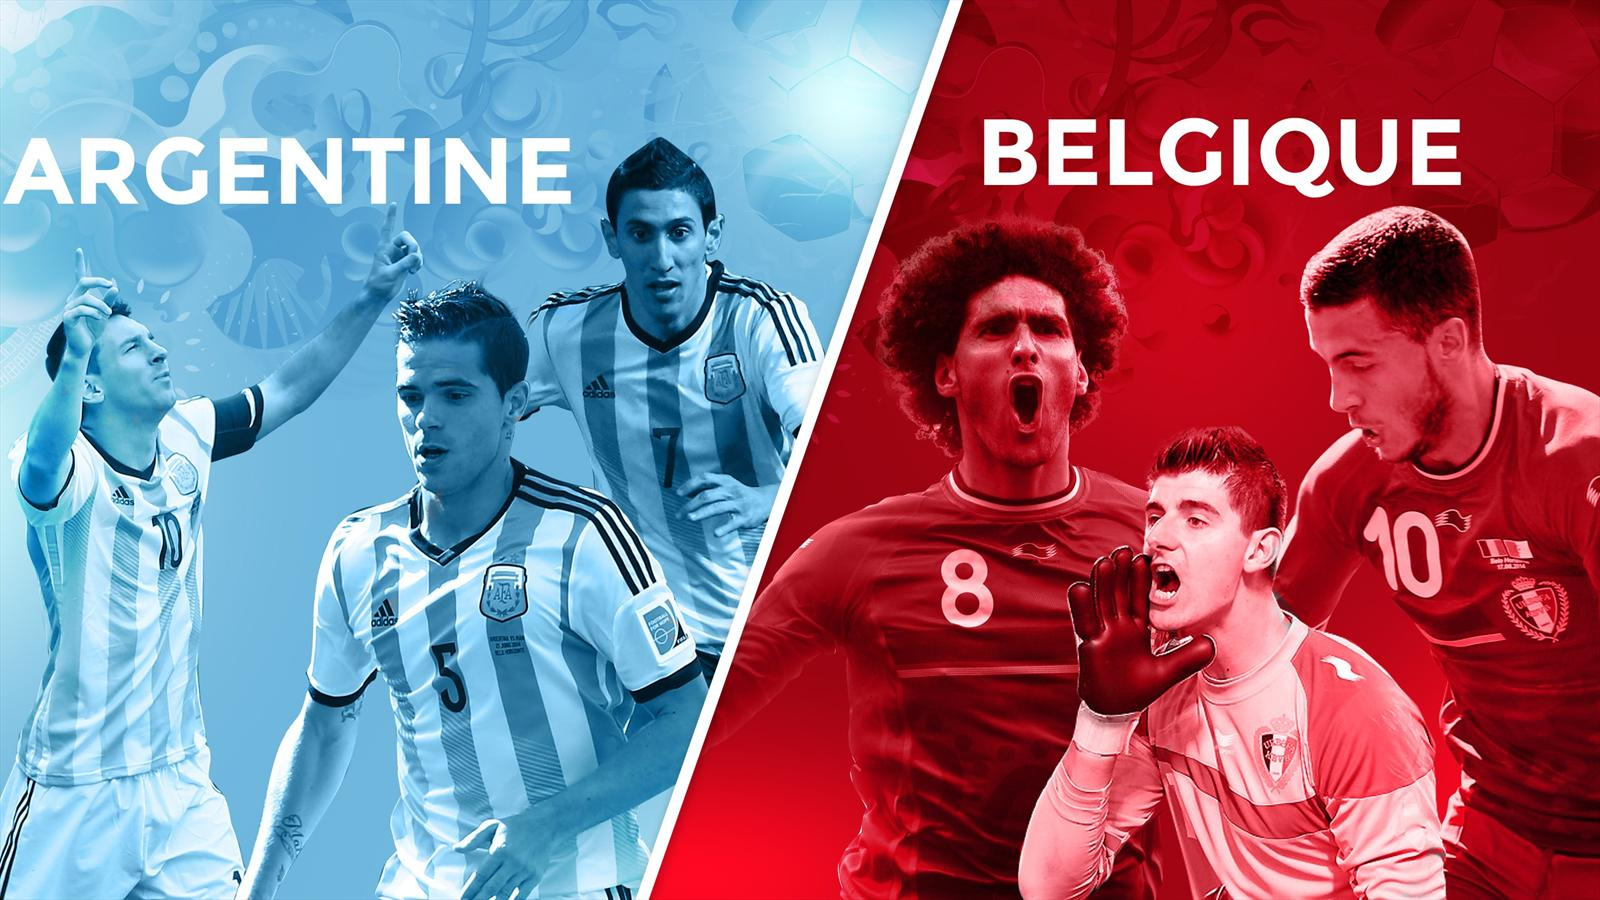 Match Argentine Belgique en direct live streaming